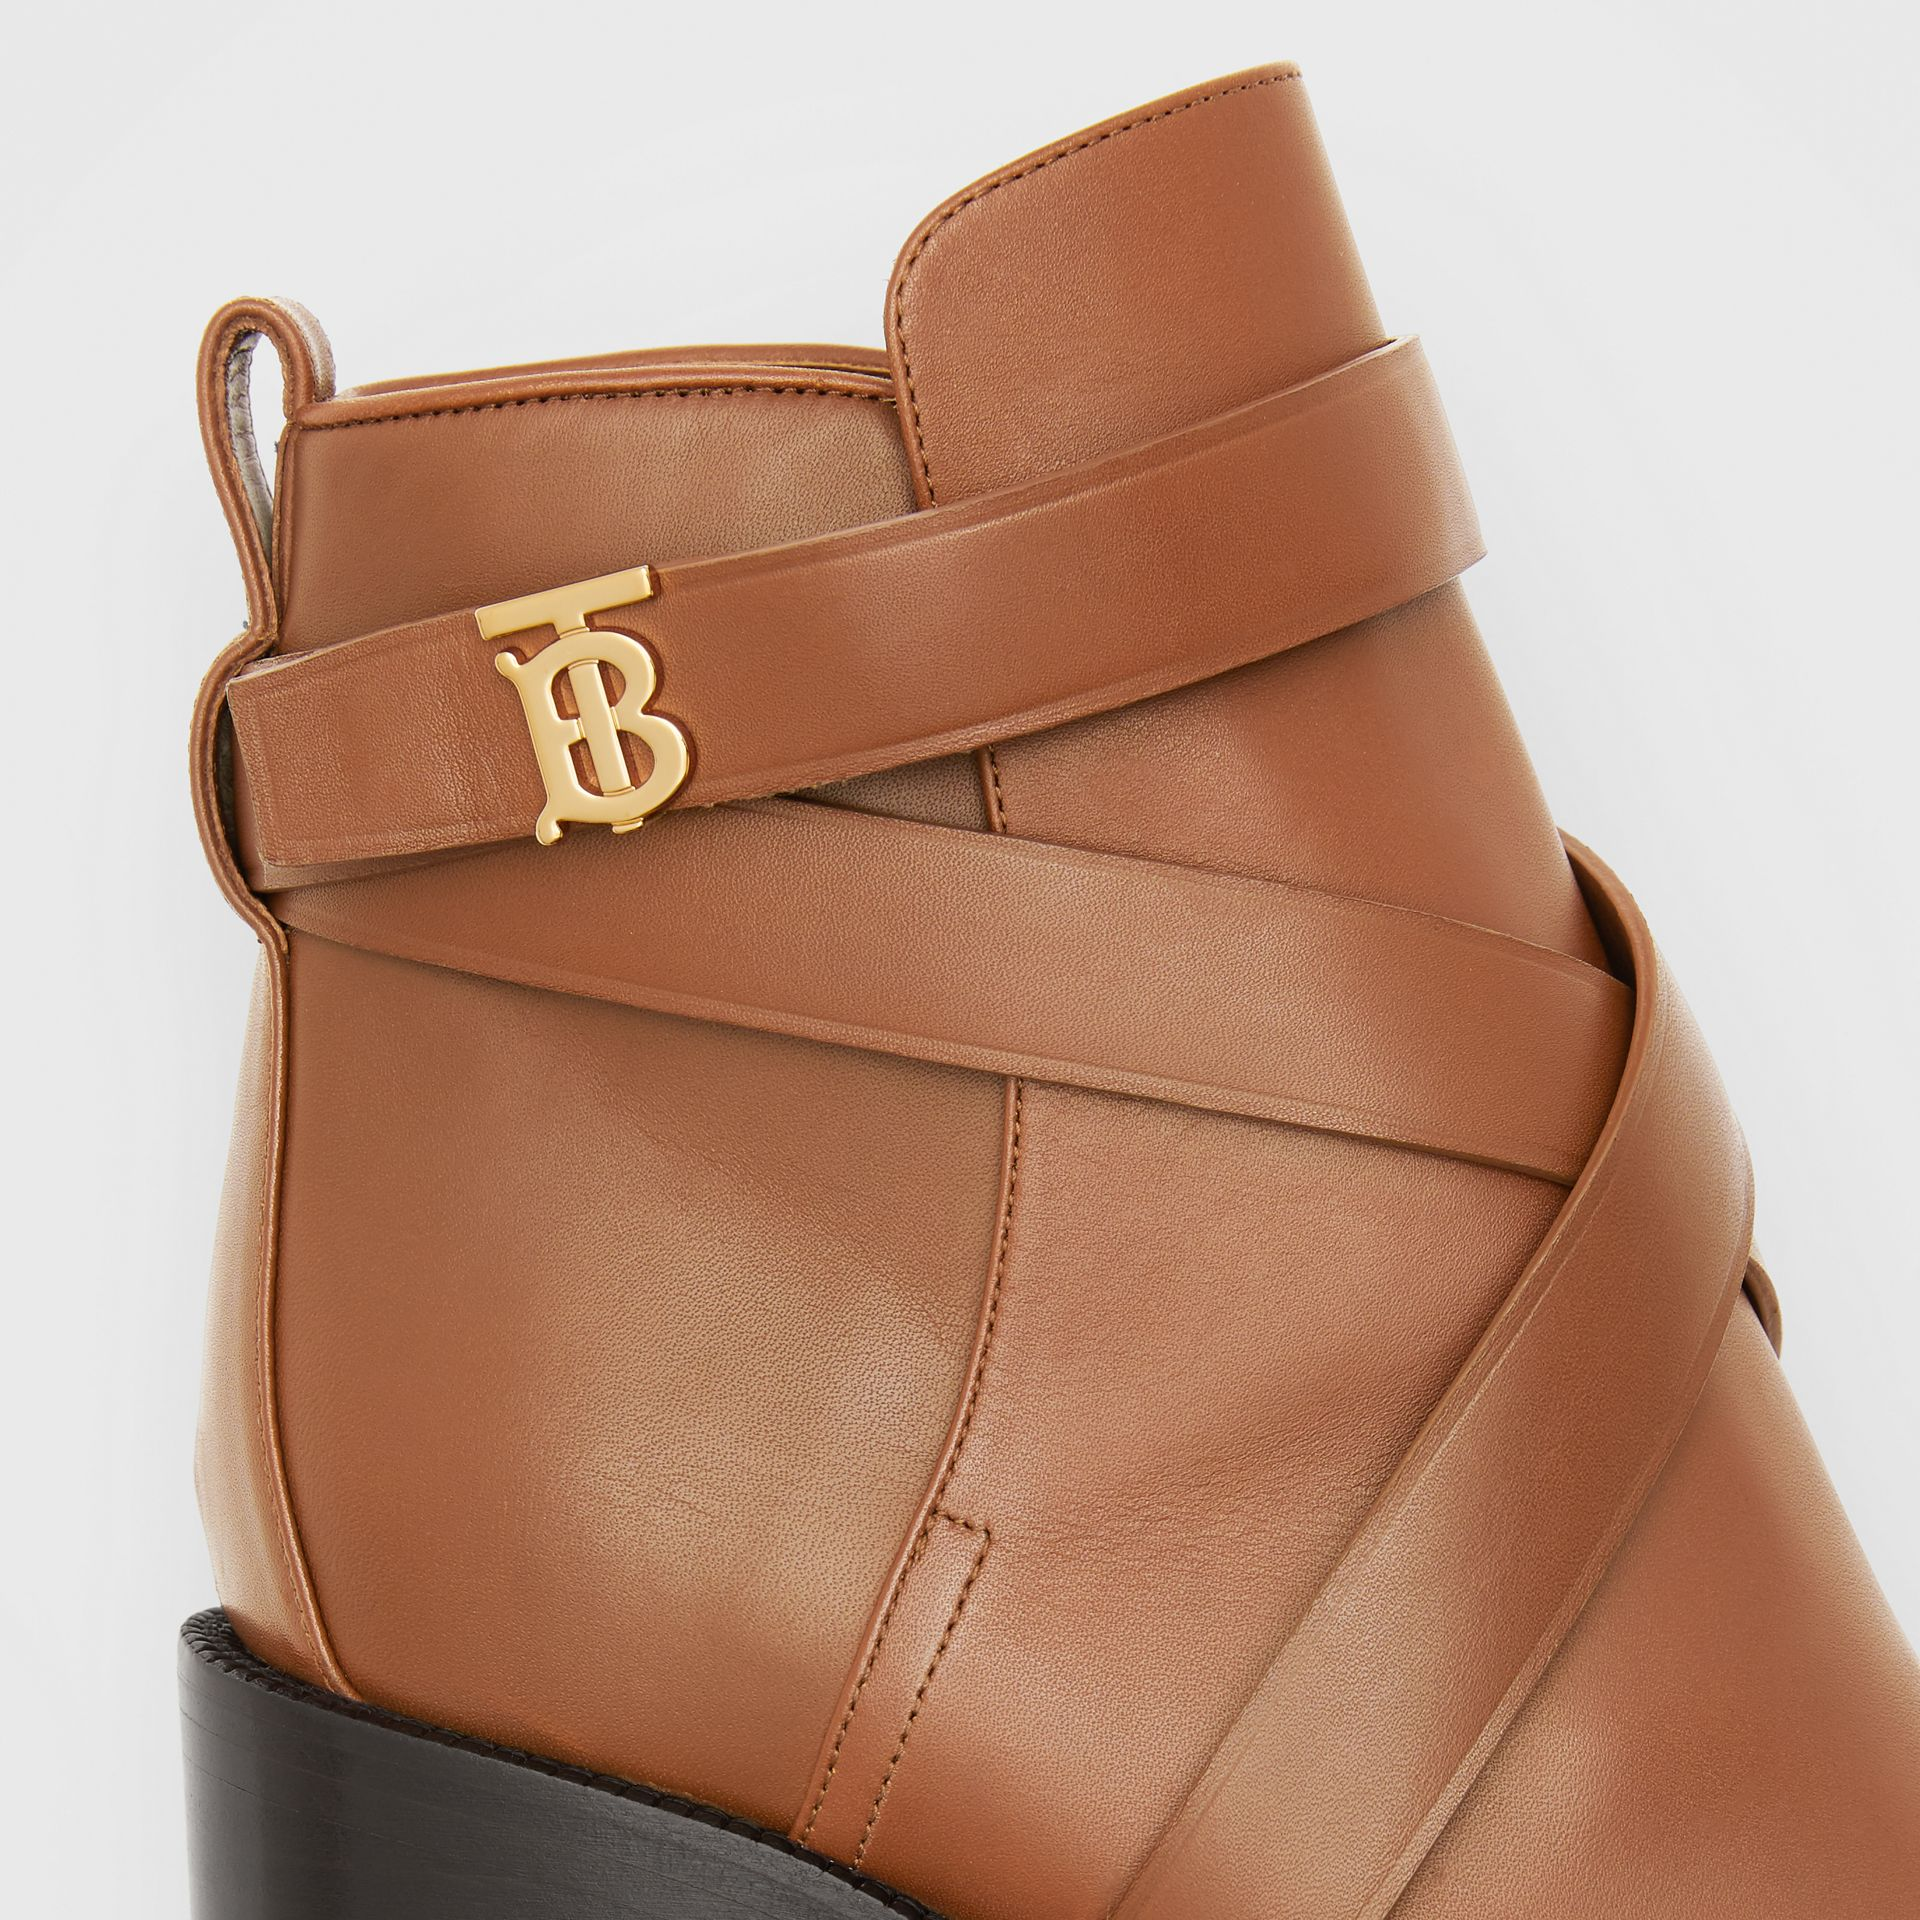 Bottines en cuir Monogram (Hâle) - Femme | Burberry - photo de la galerie 1